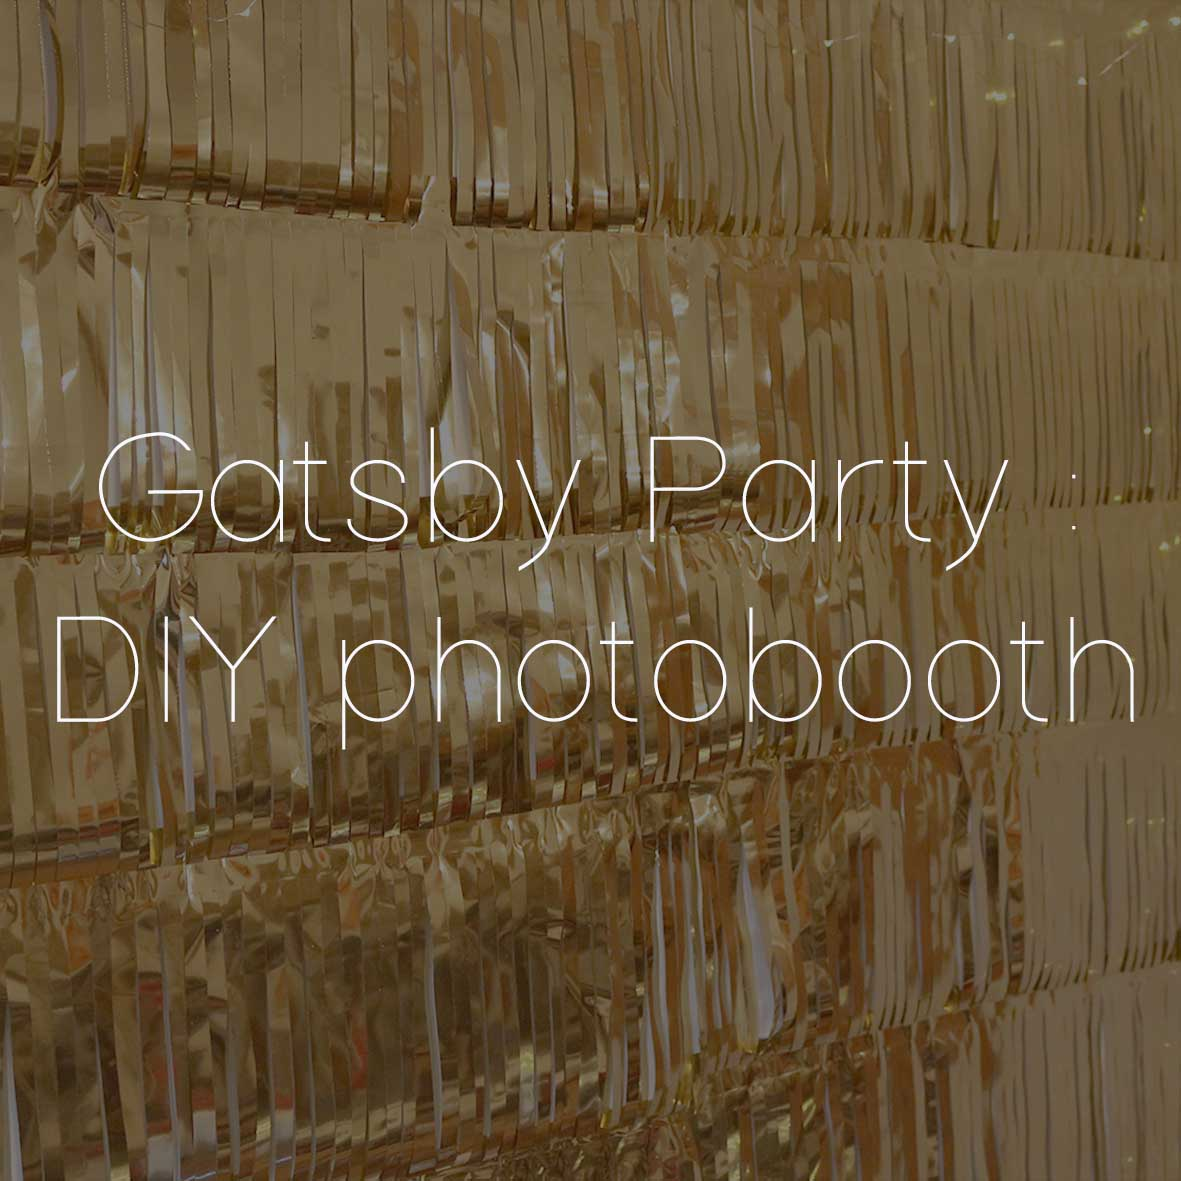 39 GATSBY PARTY DIY PHOTOBOOTH